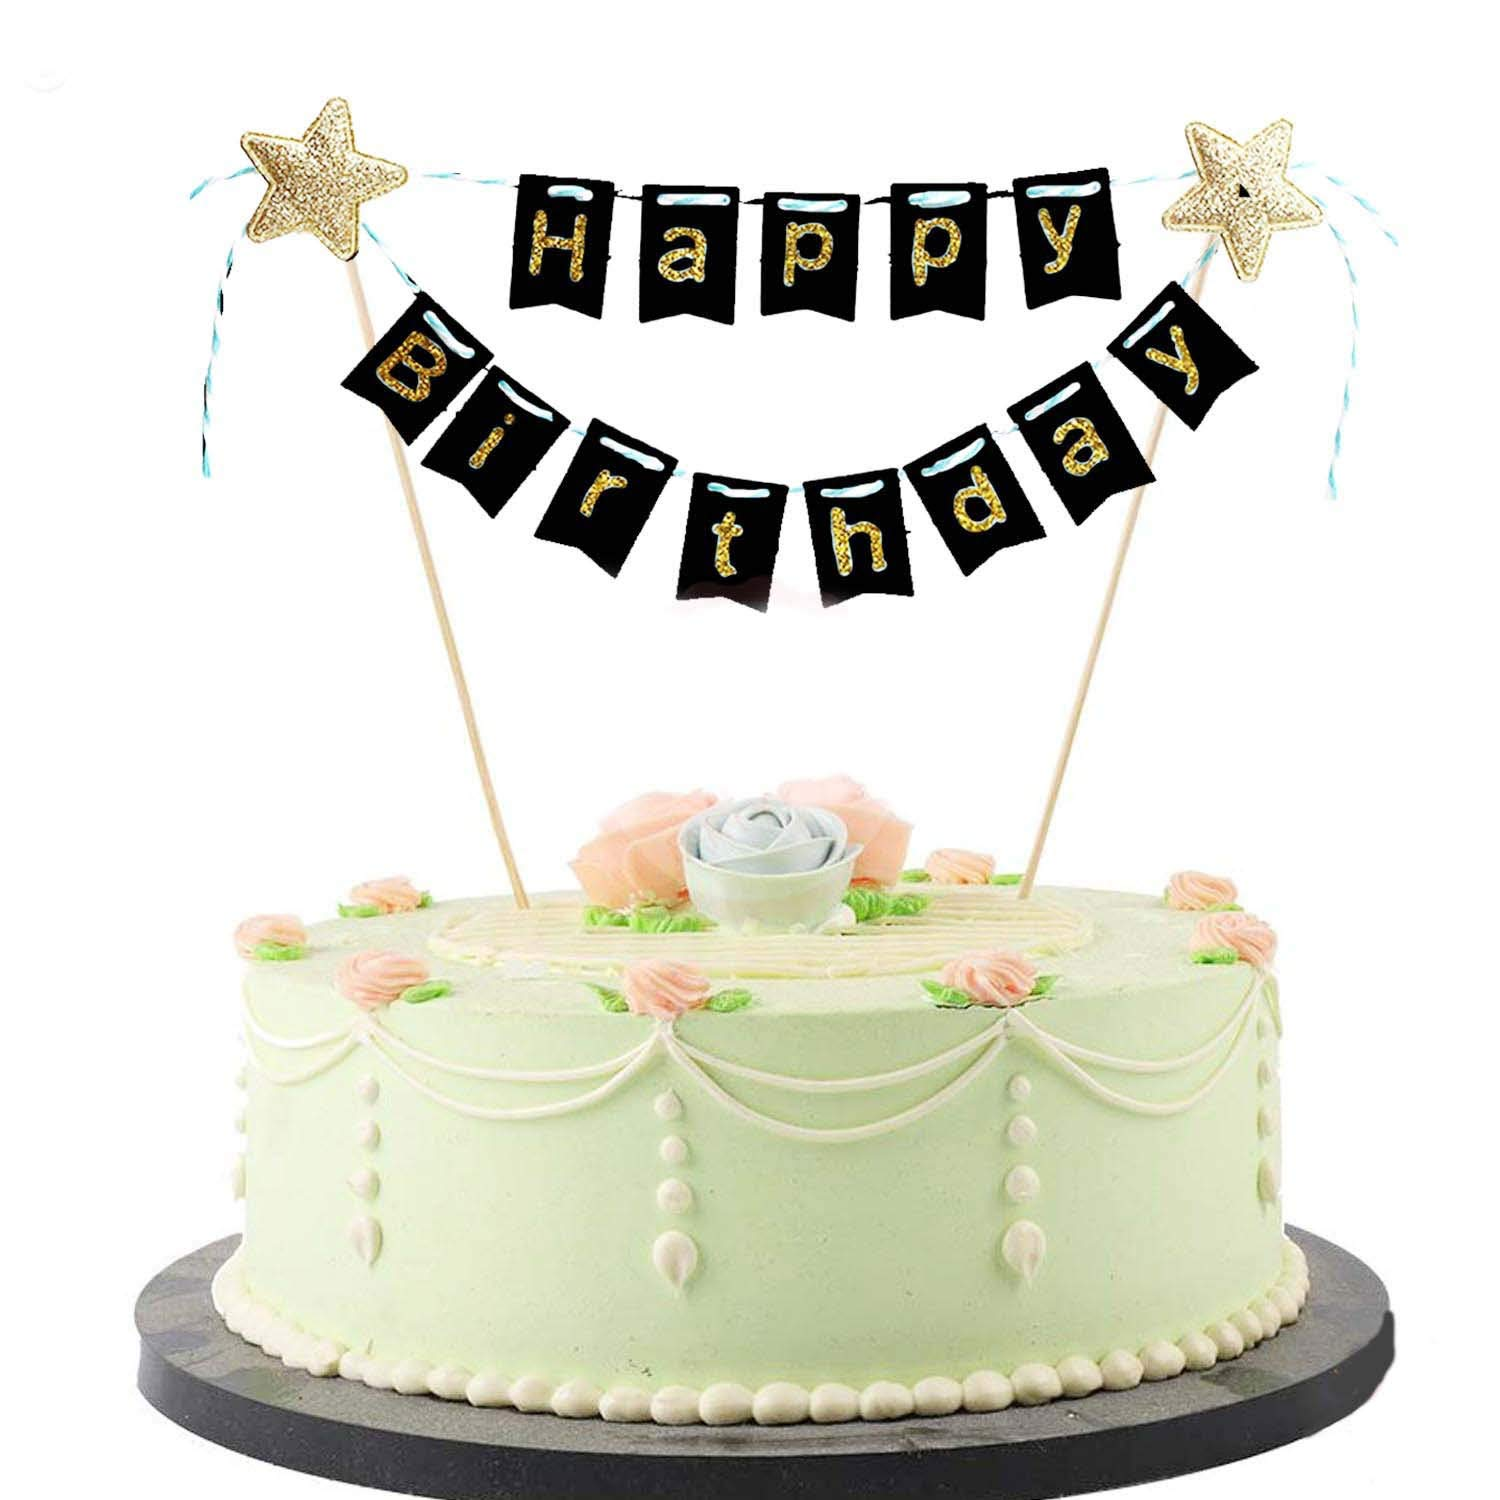 Buy Partymane Happy Birthday Paper Cake Topper For Cake Decoration Black Online At Low Prices In India Amazon In